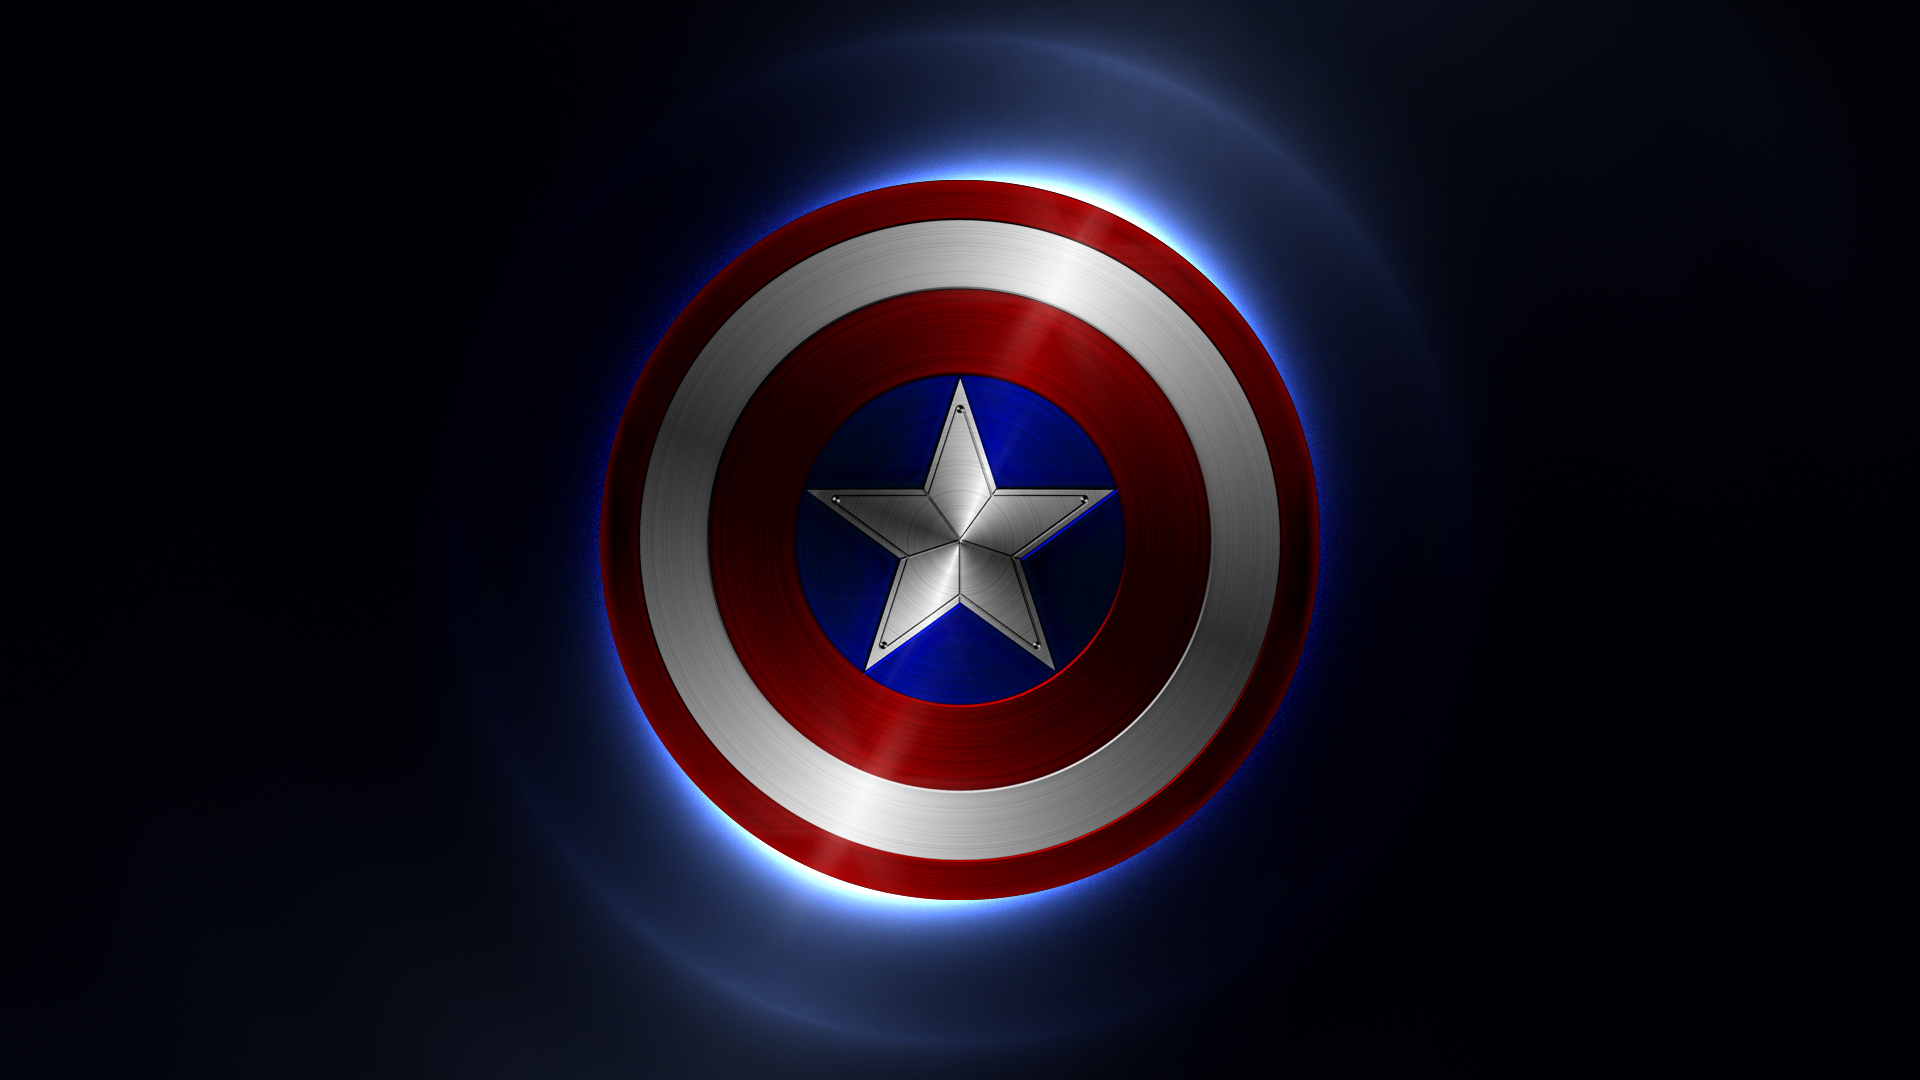 captain america logo Logospikecom Famous and Vector Logos 1920x1080